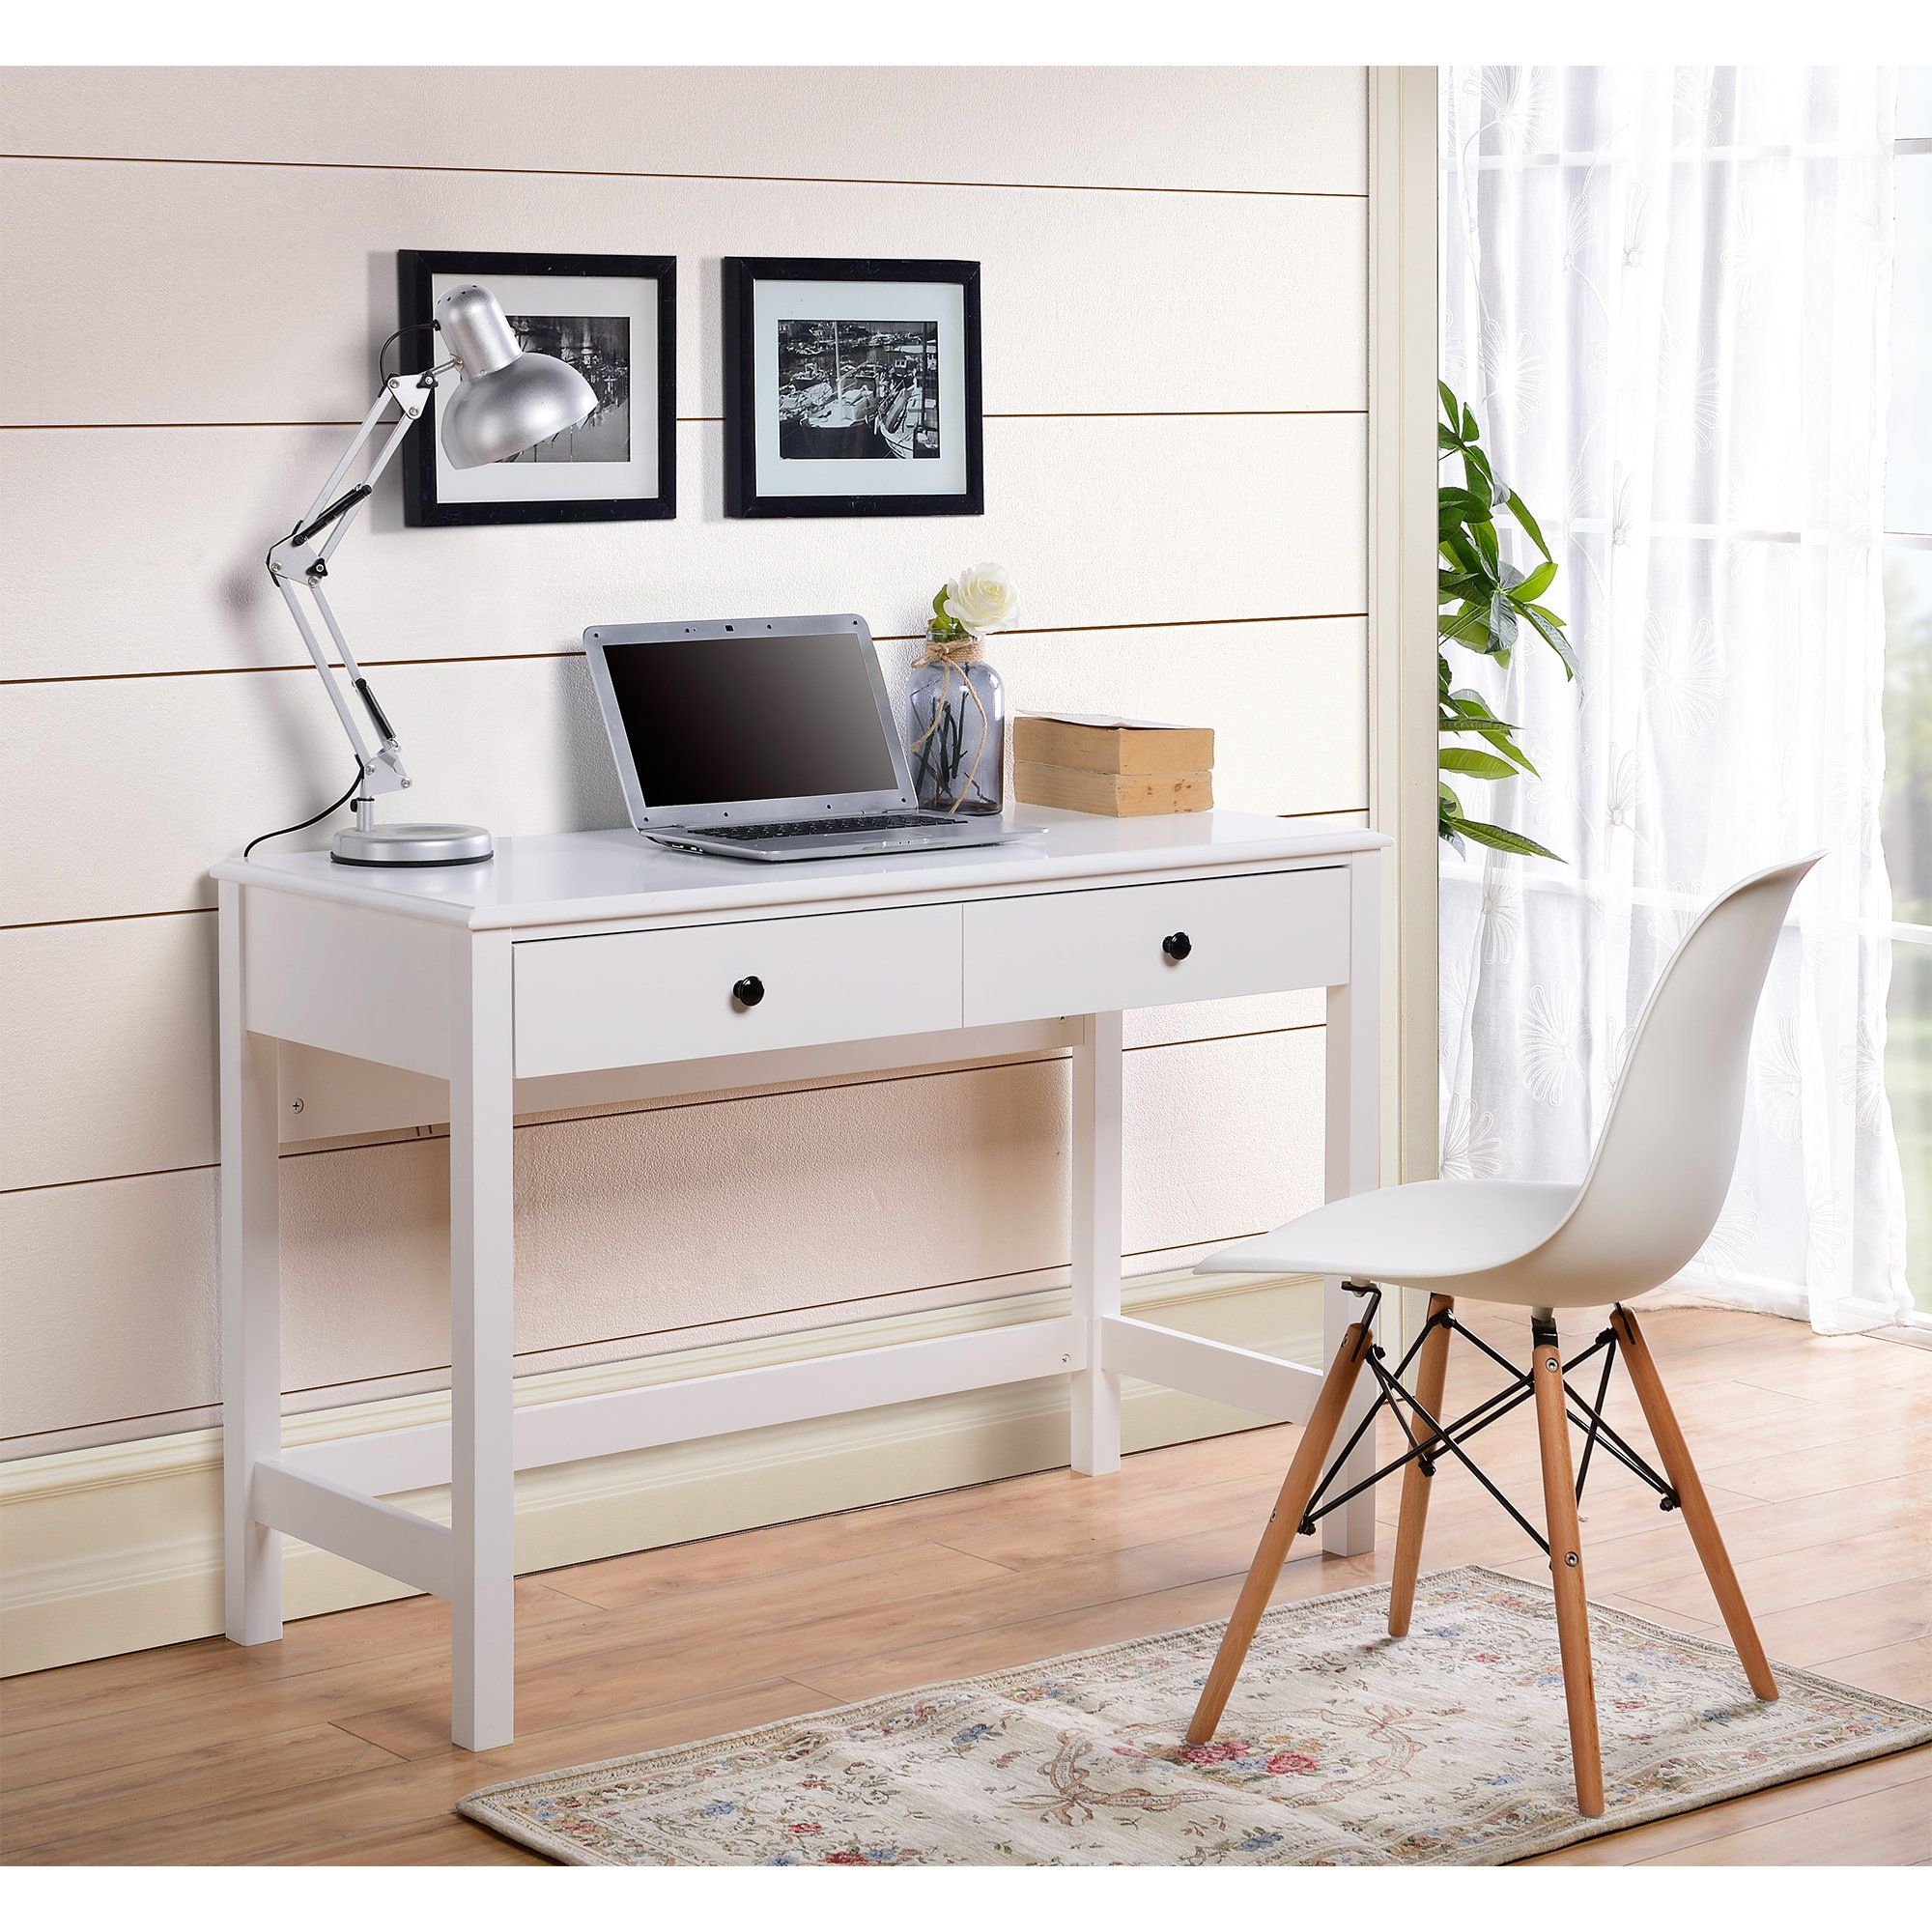 Othello particle board writing desk products pinterest